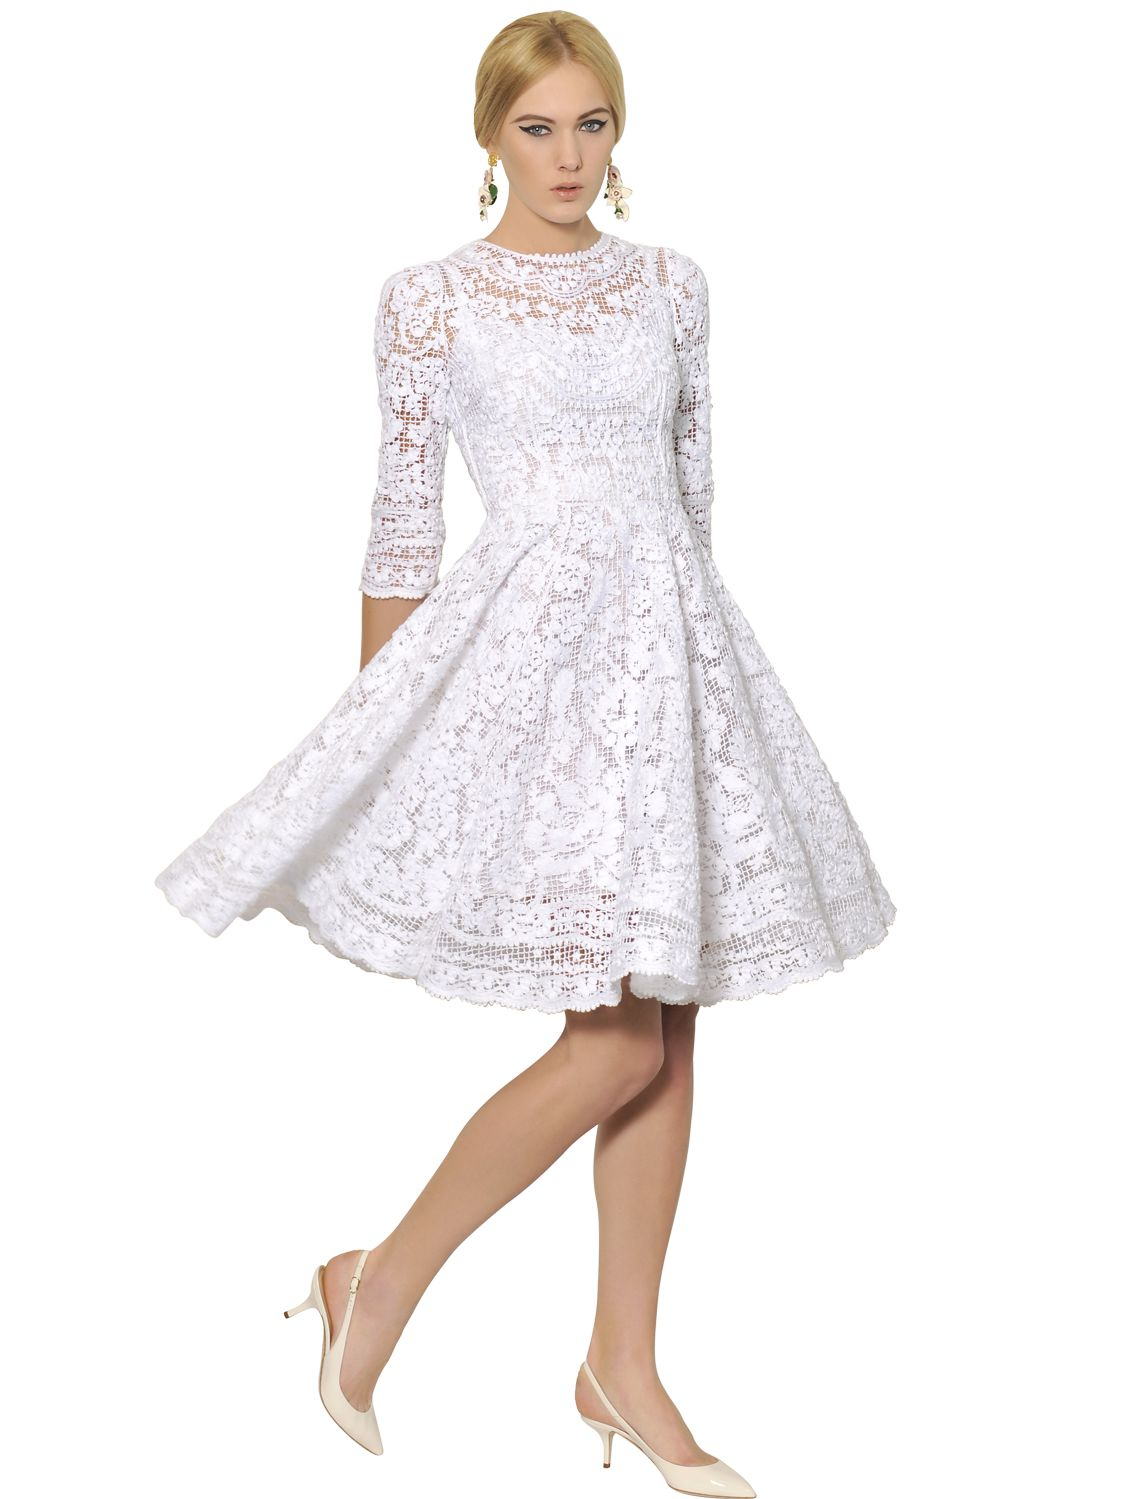 Dolce &amp- gabbana White Cotton Filet Lace Dress in White - Lyst